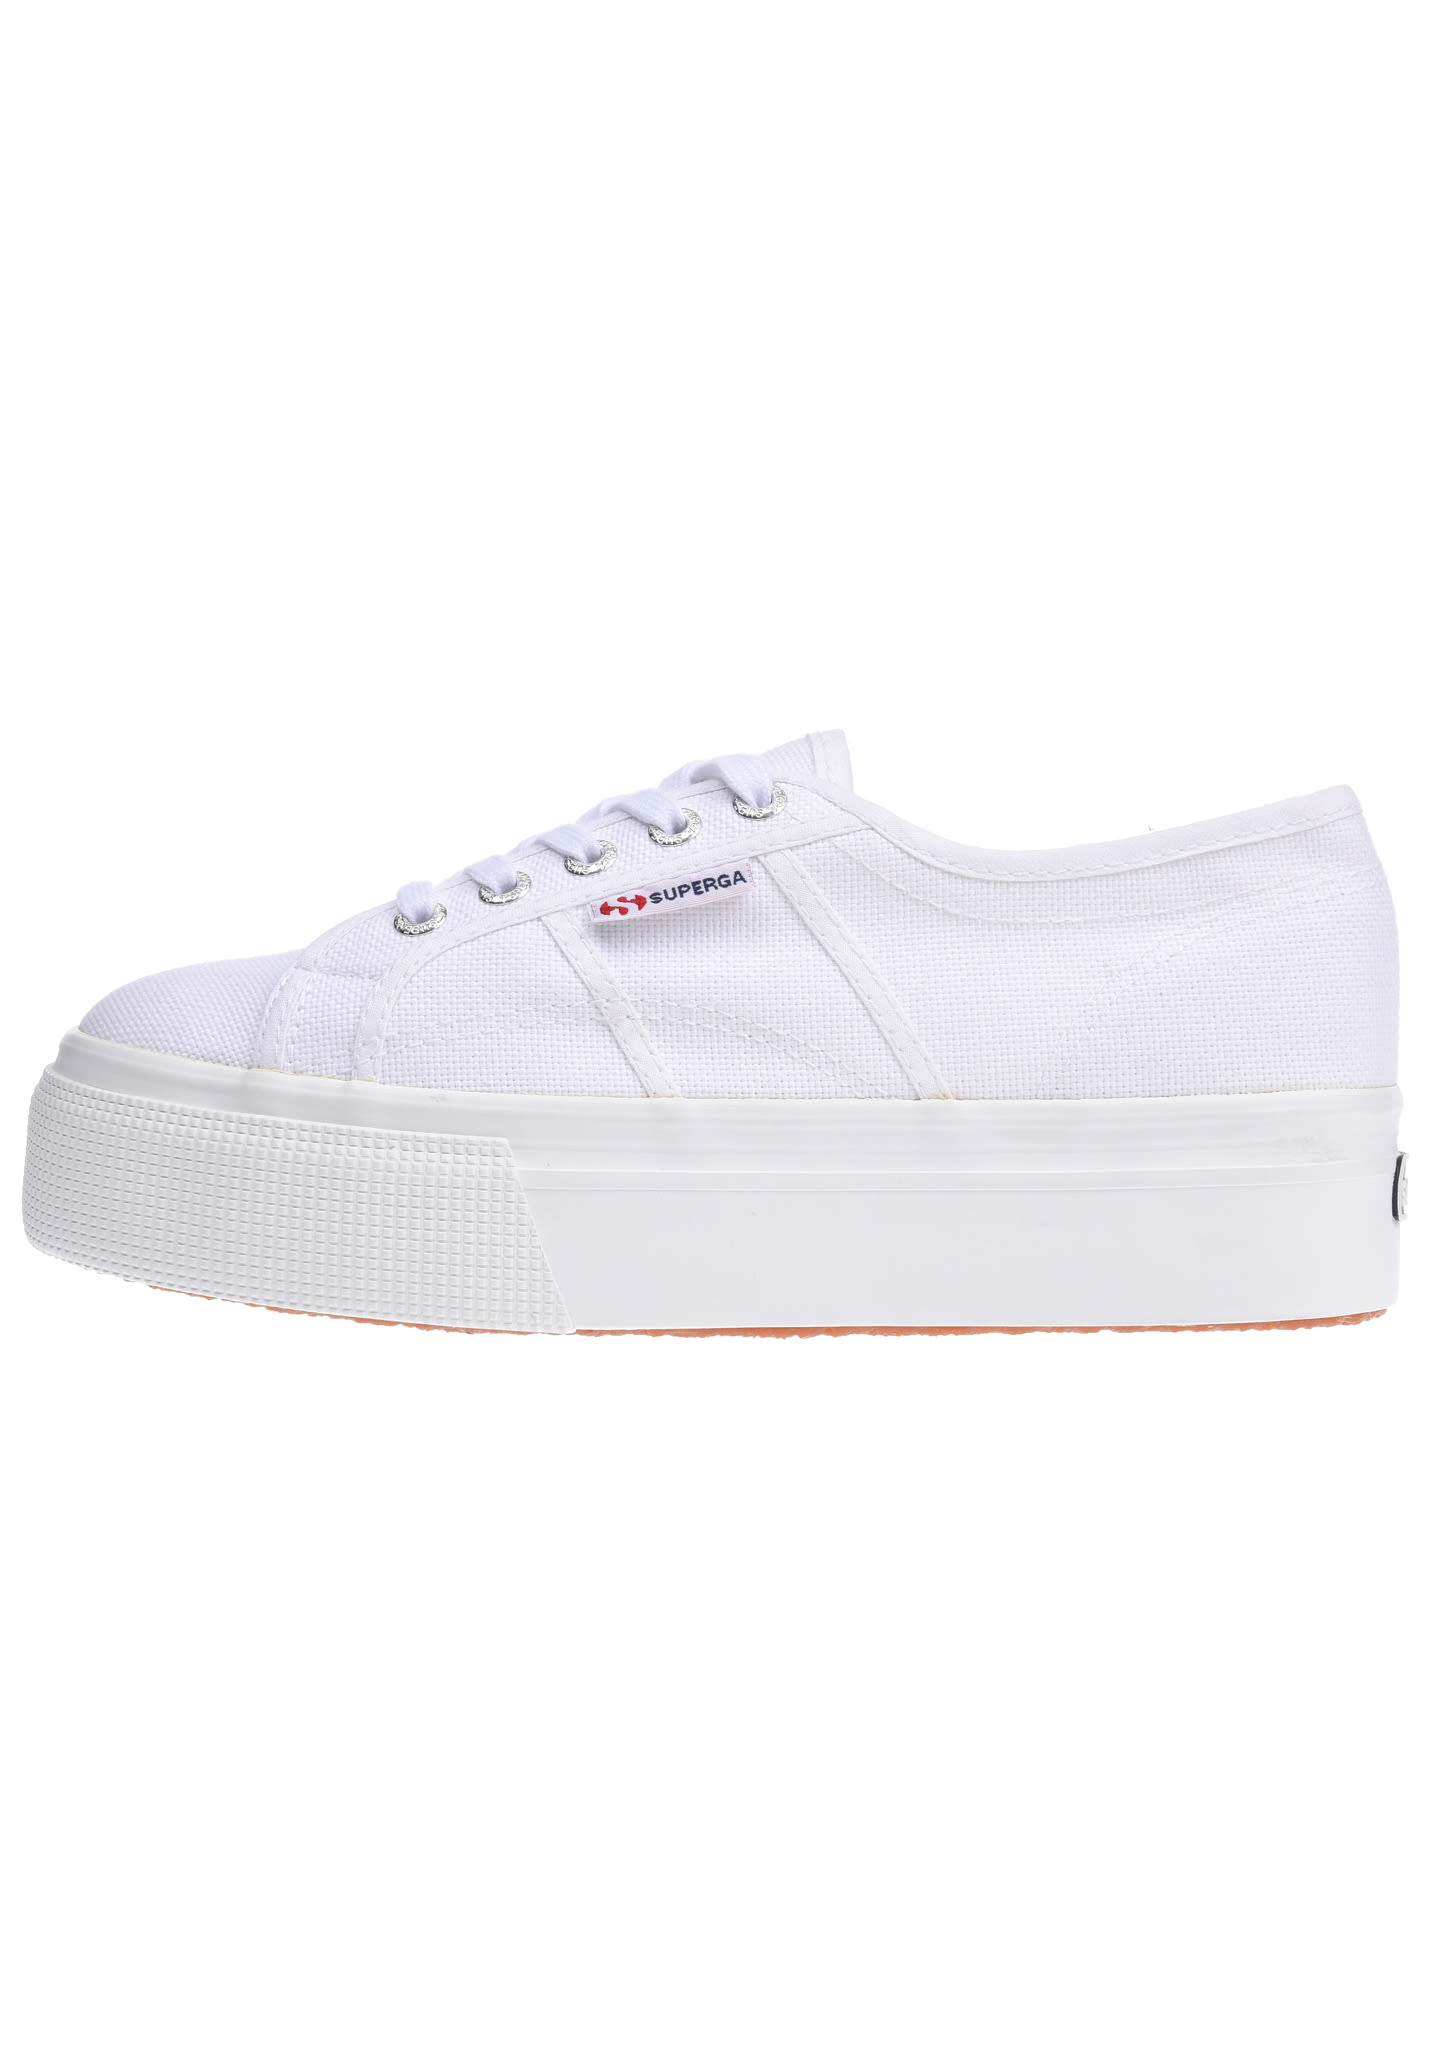 migliori scarpe da ginnastica b7470 8114c SUPERGA 2790-Acotw Linea Up And Down - Sneakers for Women - White